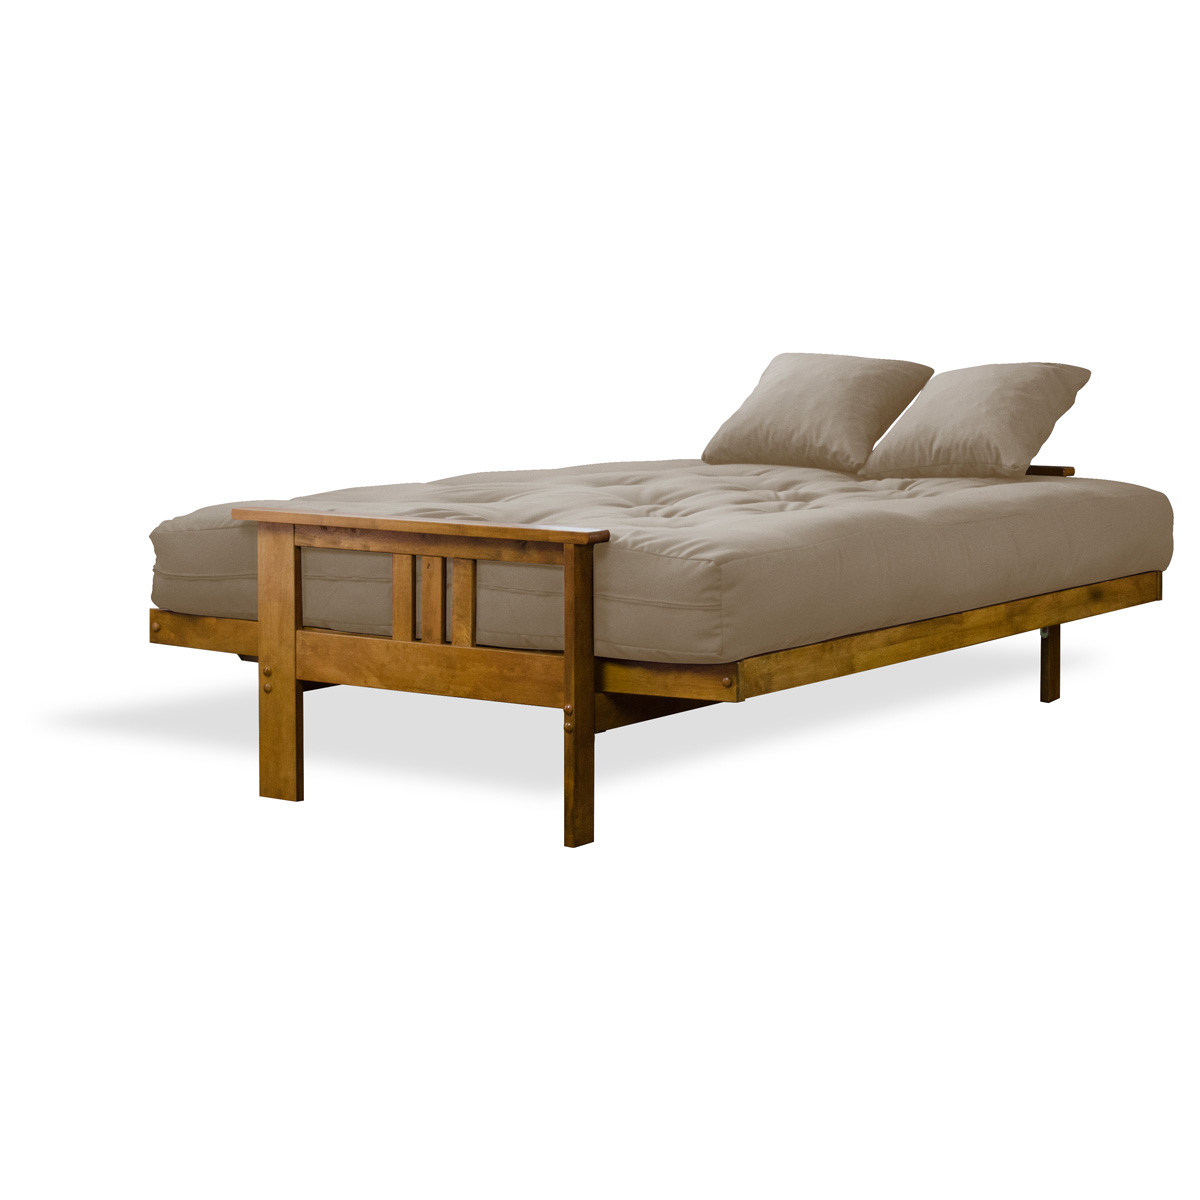 Orlando Wood Futon Frame and Mattress Set Heritage